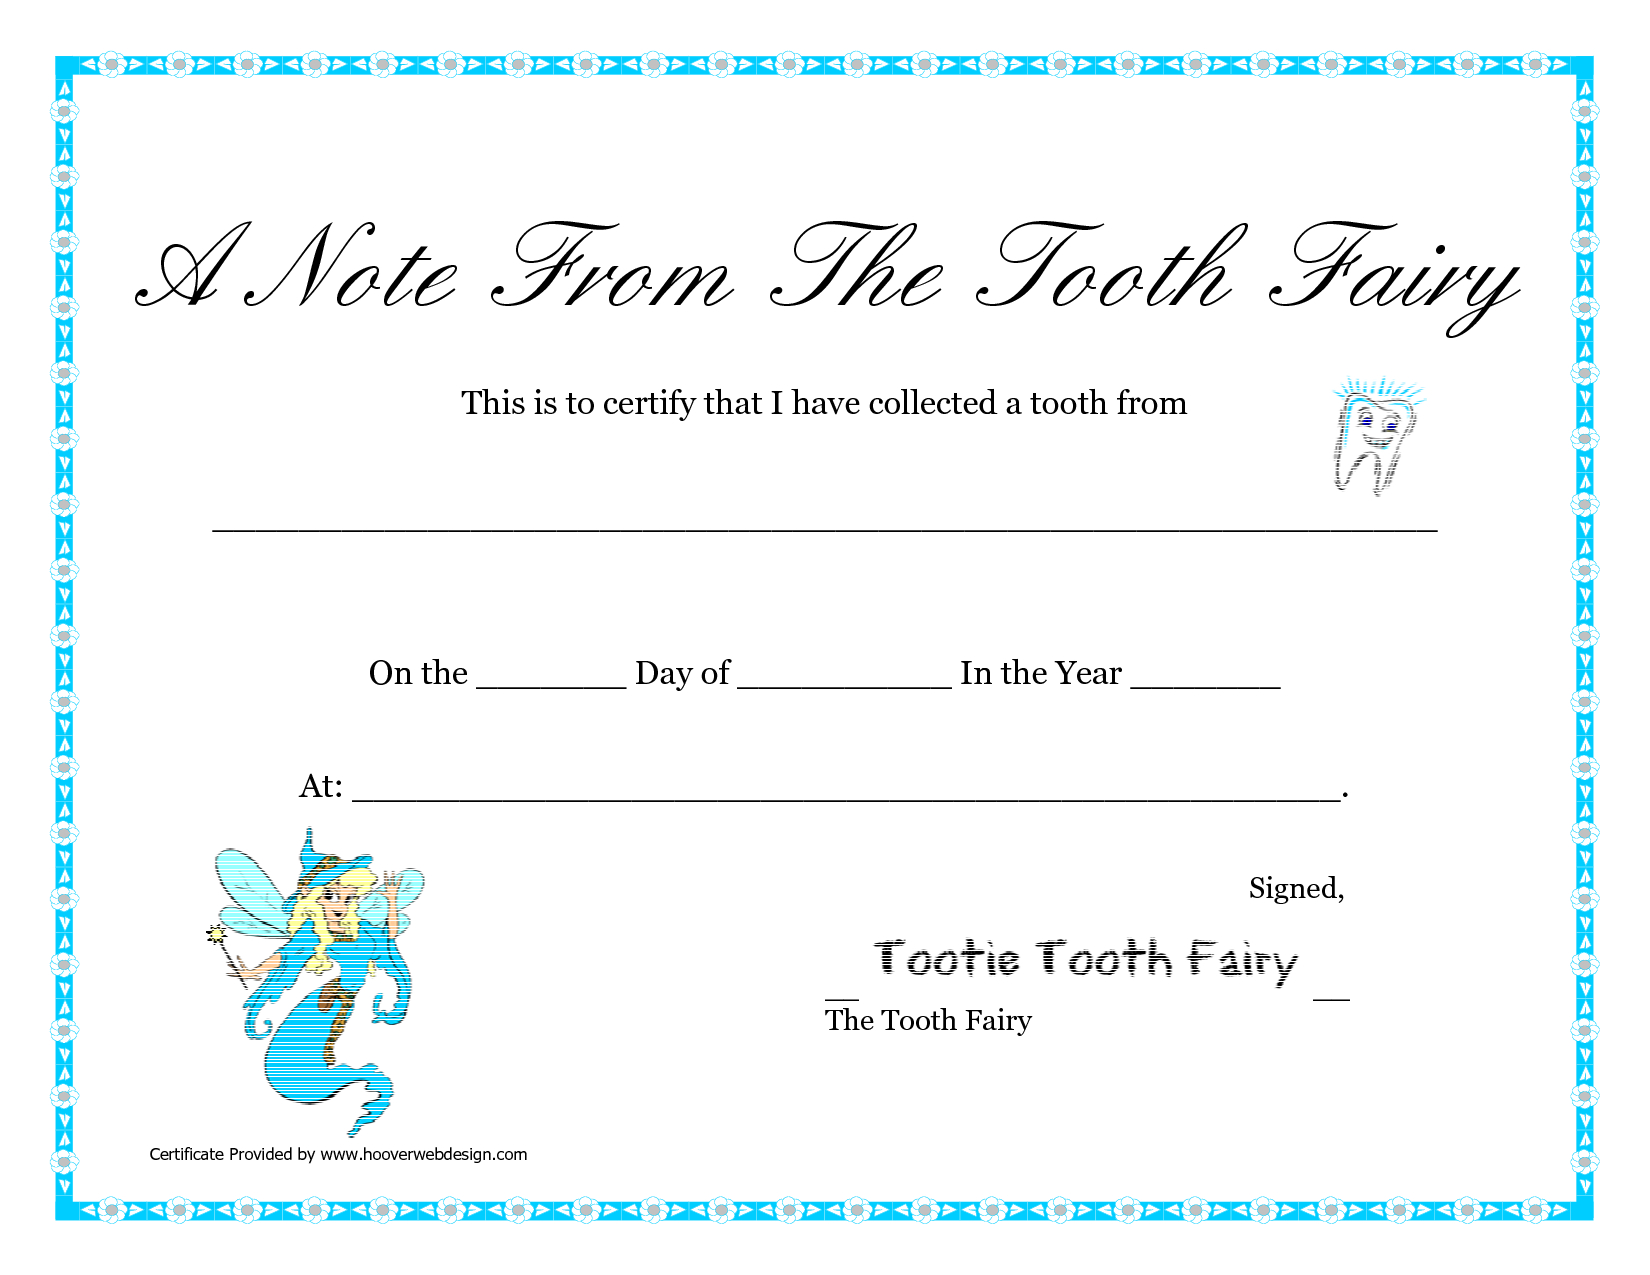 Free Printable Tooth Fairy Letter | Tooth Fairy Certificate - Tooth Fairy Stationery Free Printable